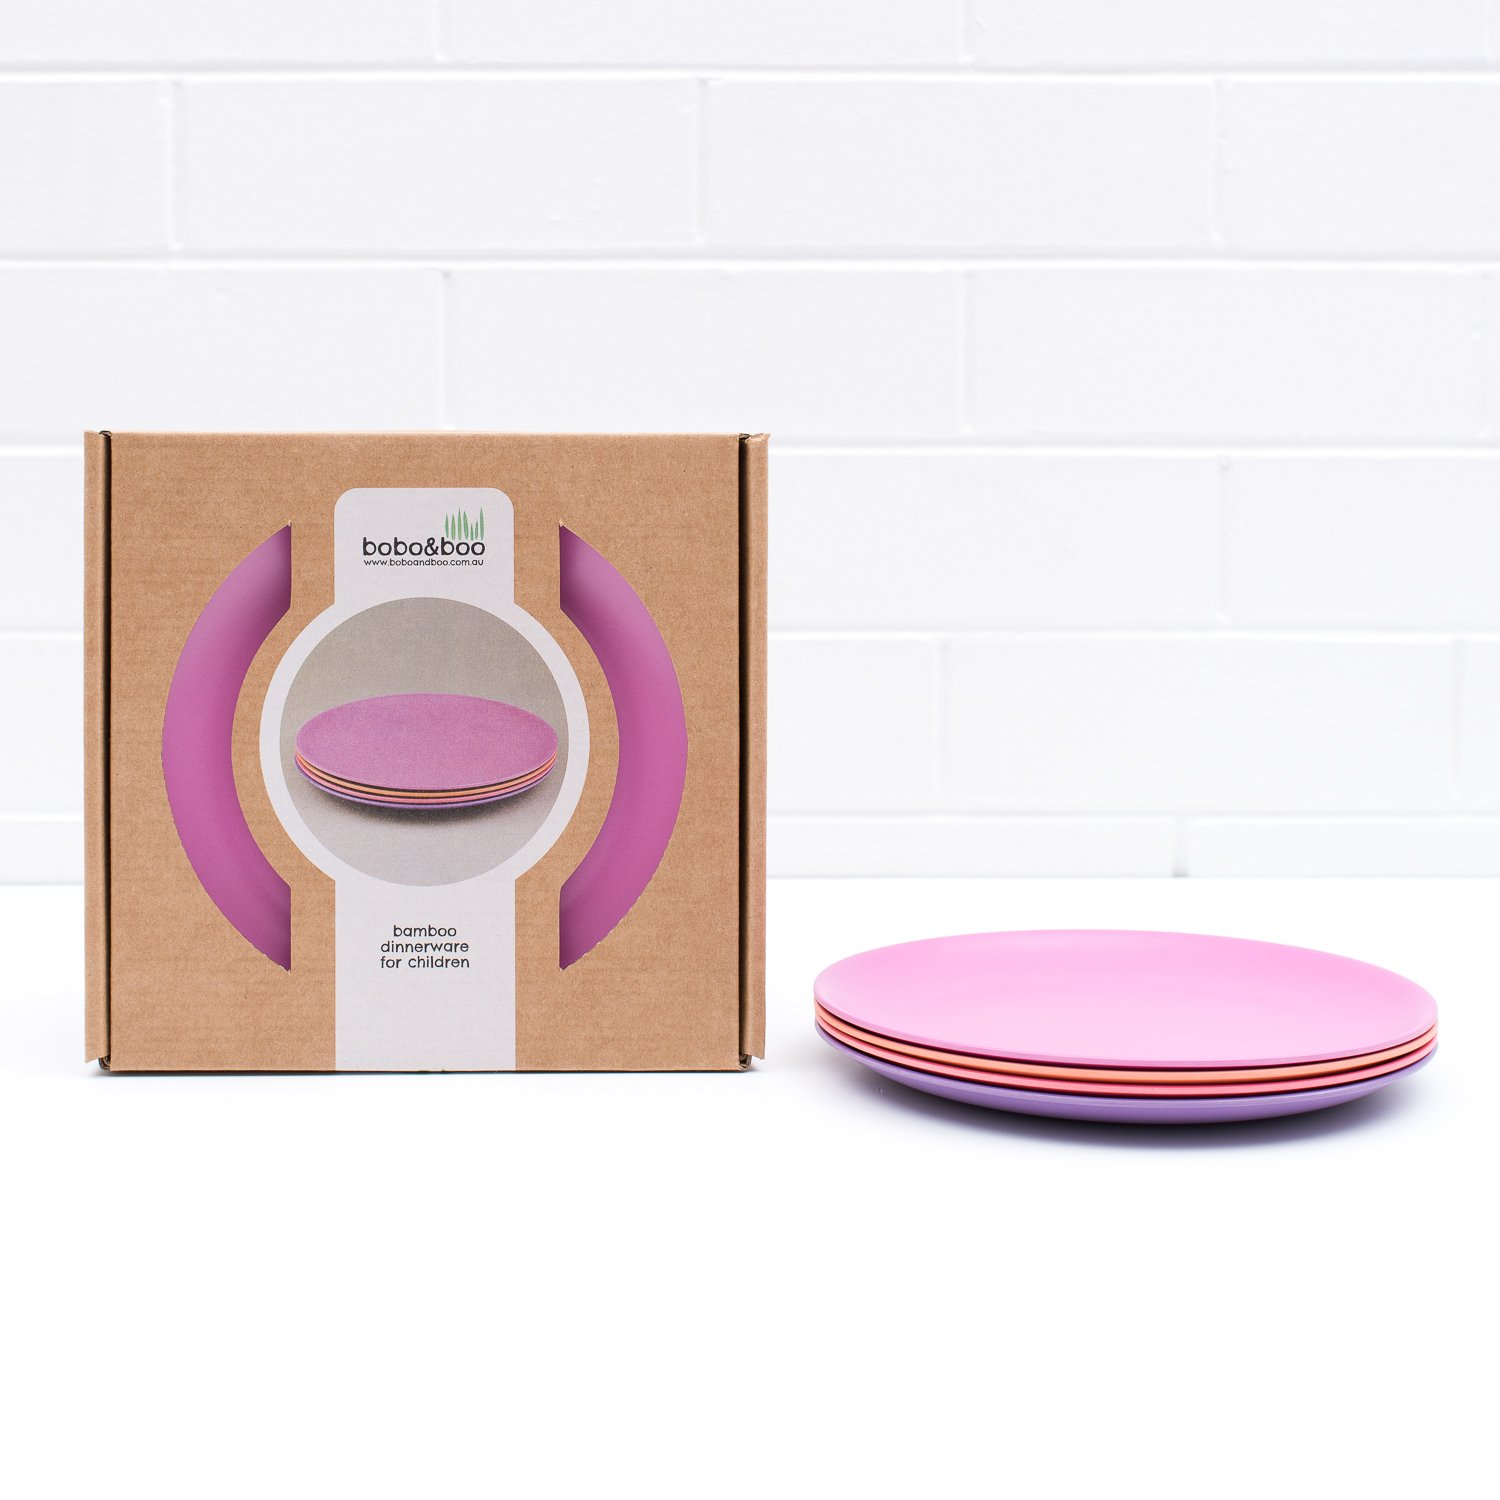 Bobo&Boo Bamboo Kids Plates, Set of 4 Eco Friendly Toddler Plates :: Non Toxic Children's Dinnerware for Babies & Big Kids :: Mix and Match :: Great Gift for Baby Showers & Birthdays, Sunset